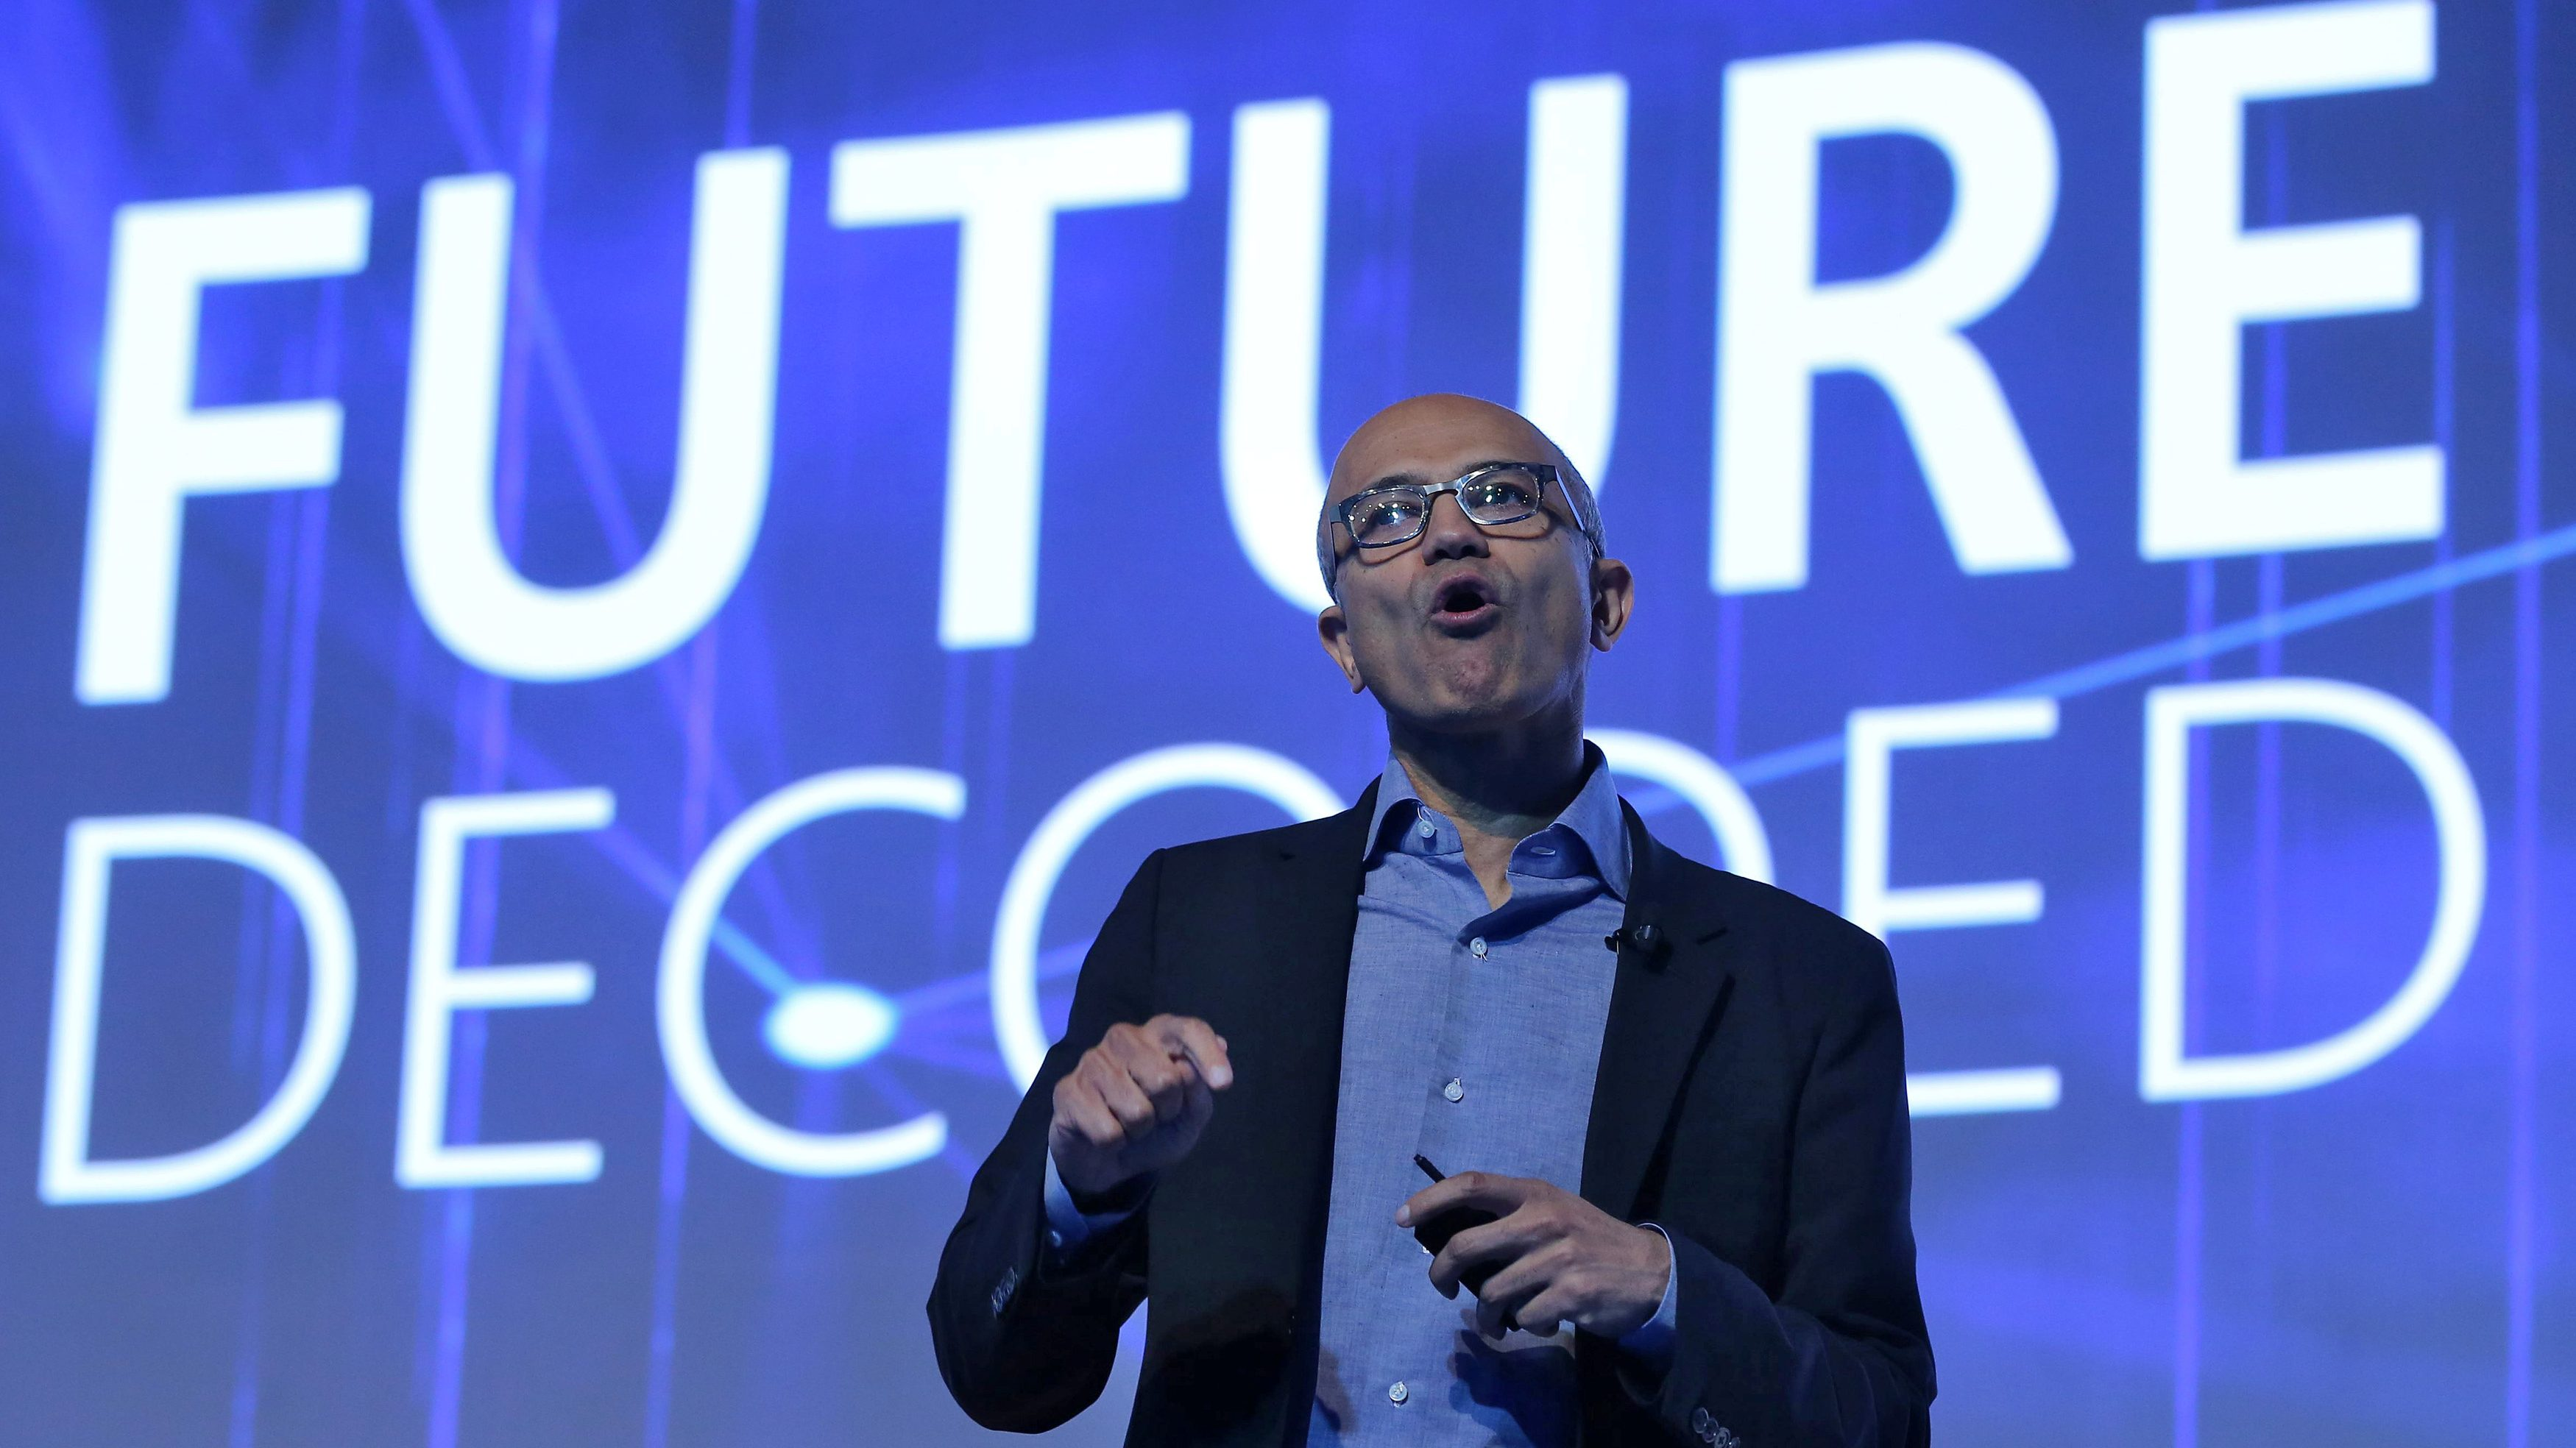 Microsoft CEO Satya Nadella speaks at the Future Decoded conference in Mumbai, India, February 22, 2017.